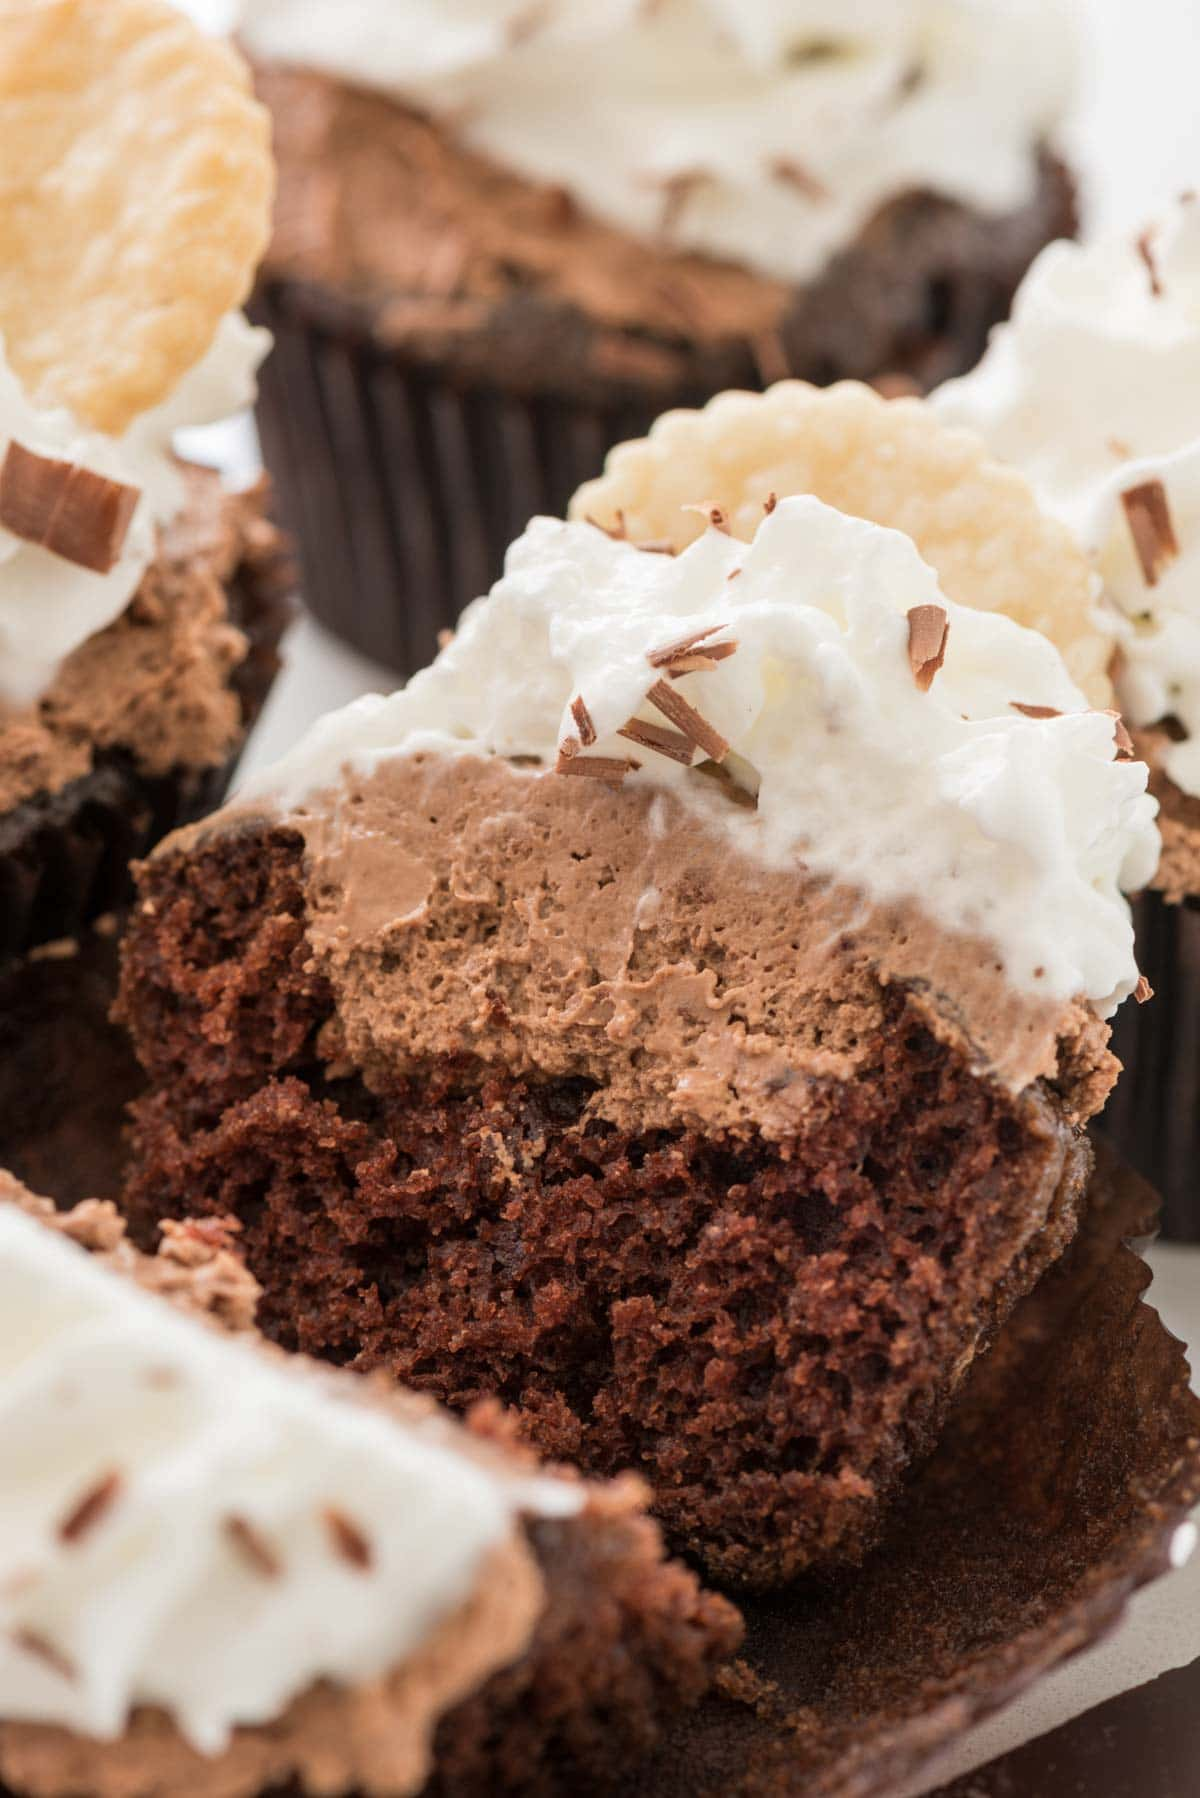 French Silk Cupcakes - these easy chocolate cupcakes are filled with an eggless french silk filling and topped with whipped cream!